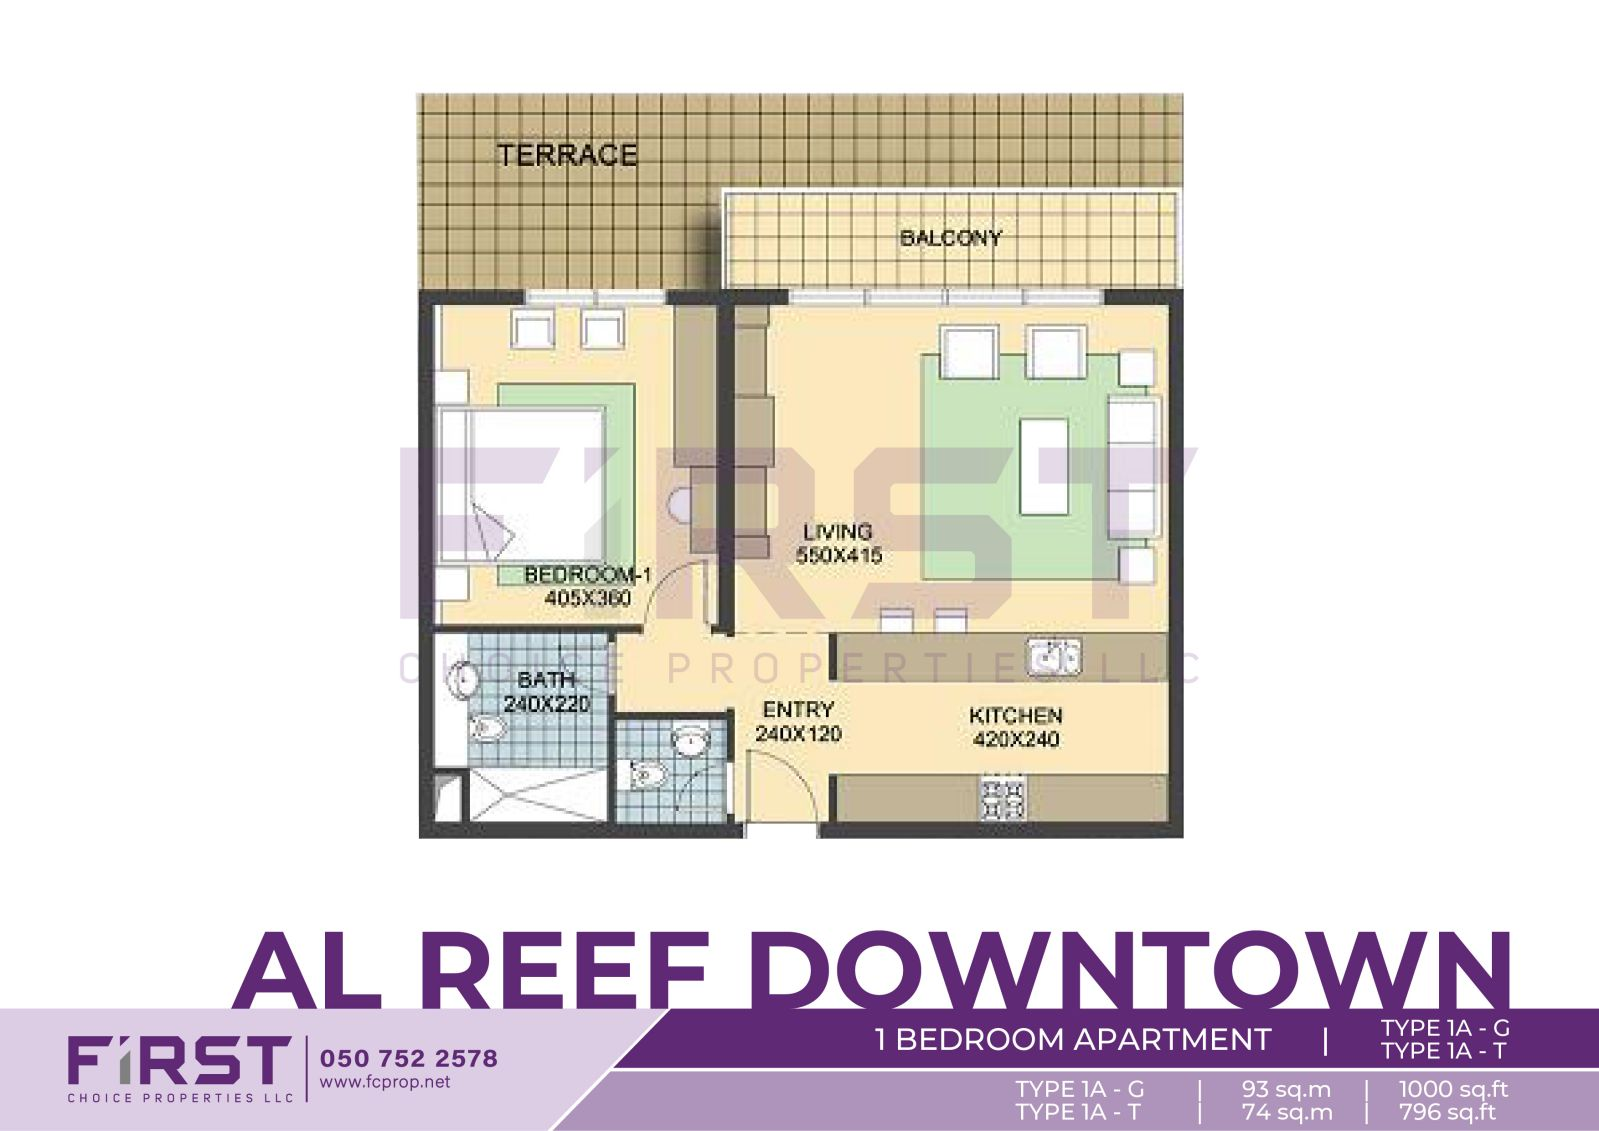 Floor Plan of 1 Bedroom Apartment TYPE 1A-G 93 sq.m in Al Reef Downtown Al Reef Abu Dhabi UAE 1000 sq.ft T 74 sq.m 796 sq.ft.jpg